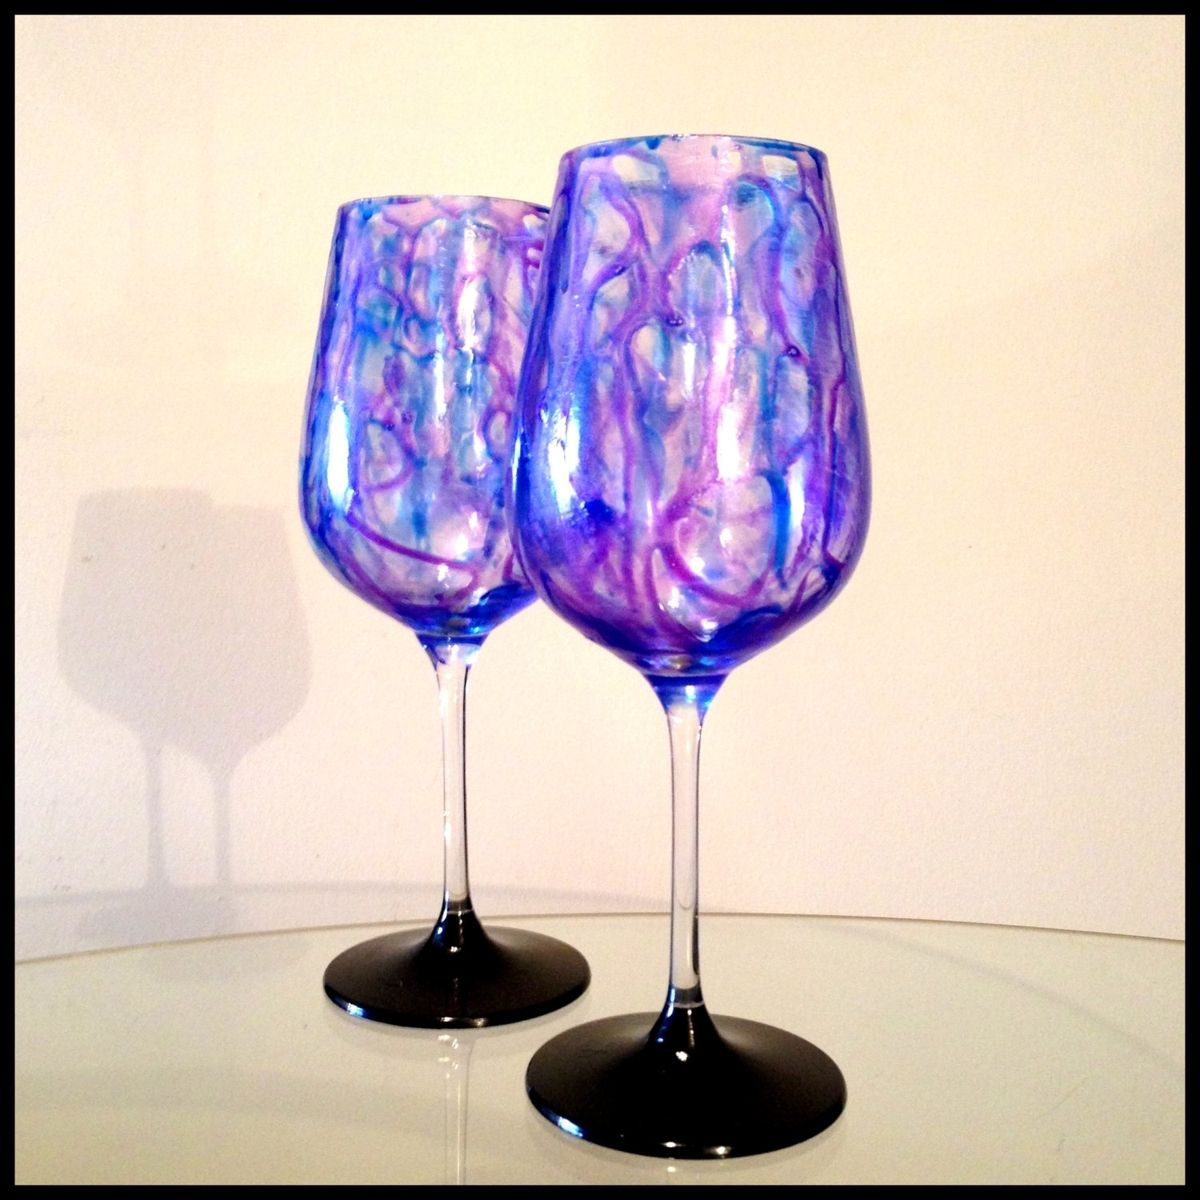 Handmade Purple And Blue Abstract Design White Wine